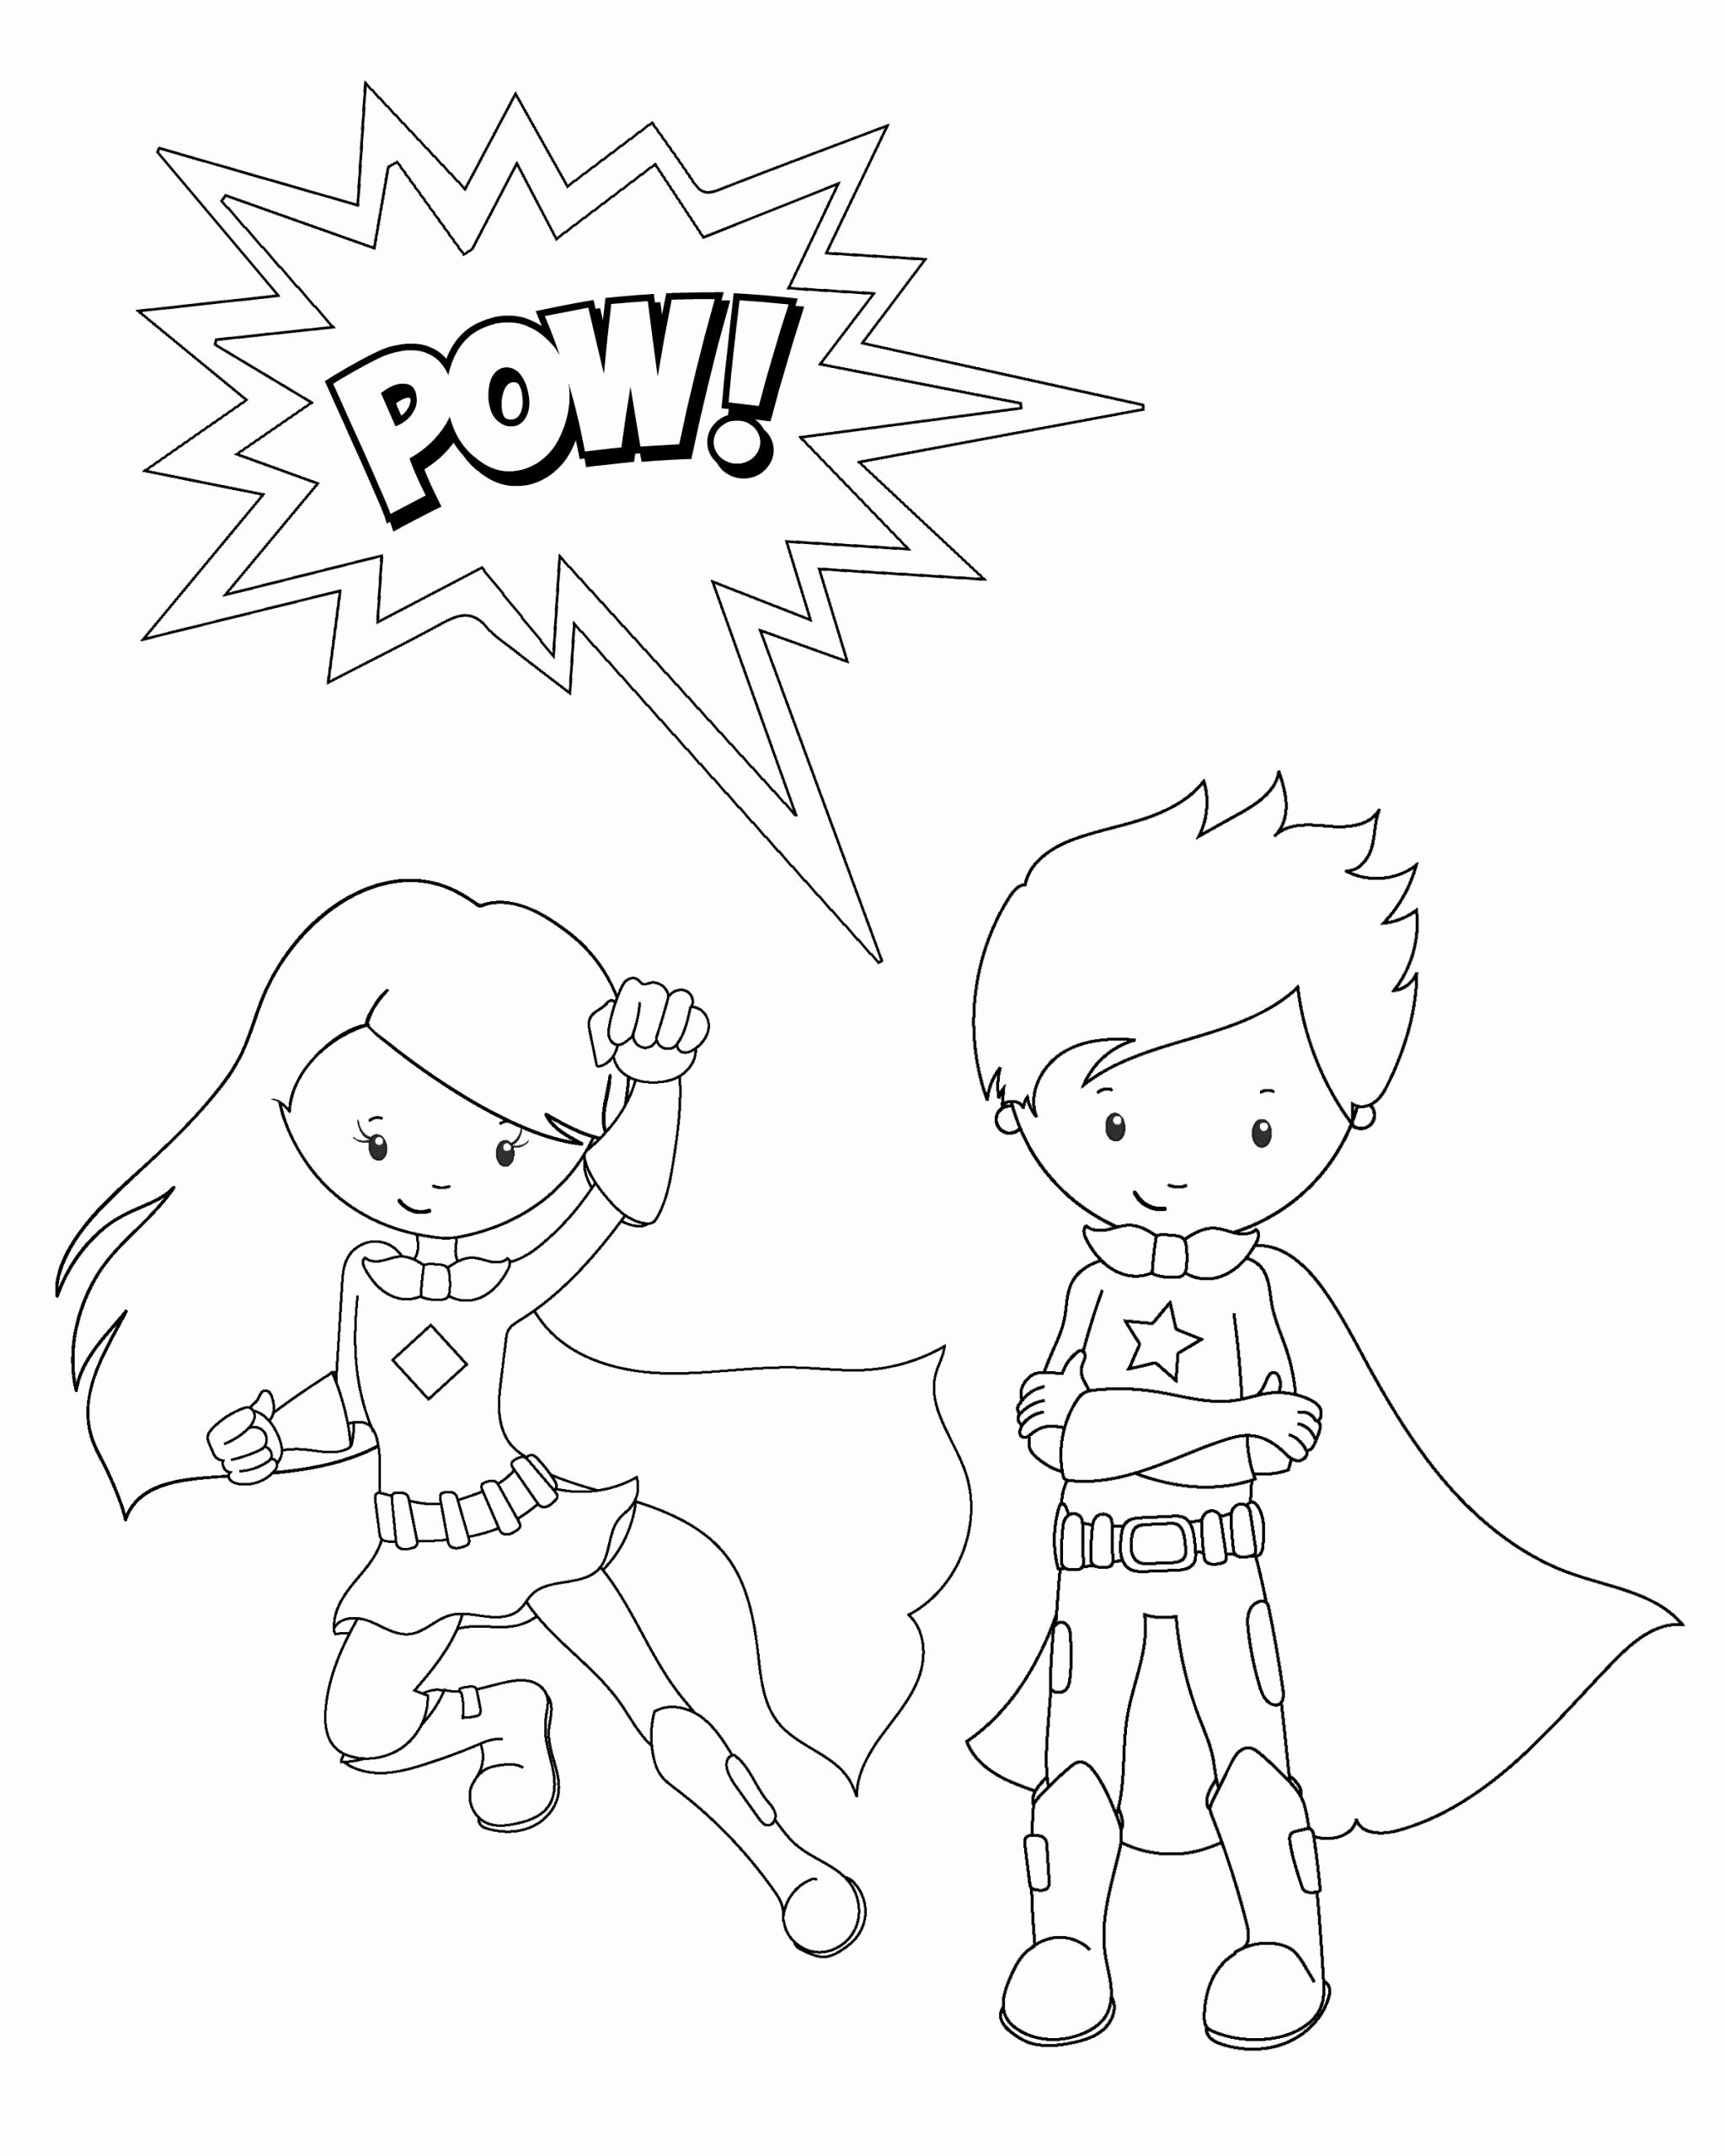 Printable Coloring Pages For Kids Superhero In 2020 Super Hero Coloring Sheets Superhero Coloring Superhero Coloring Pages